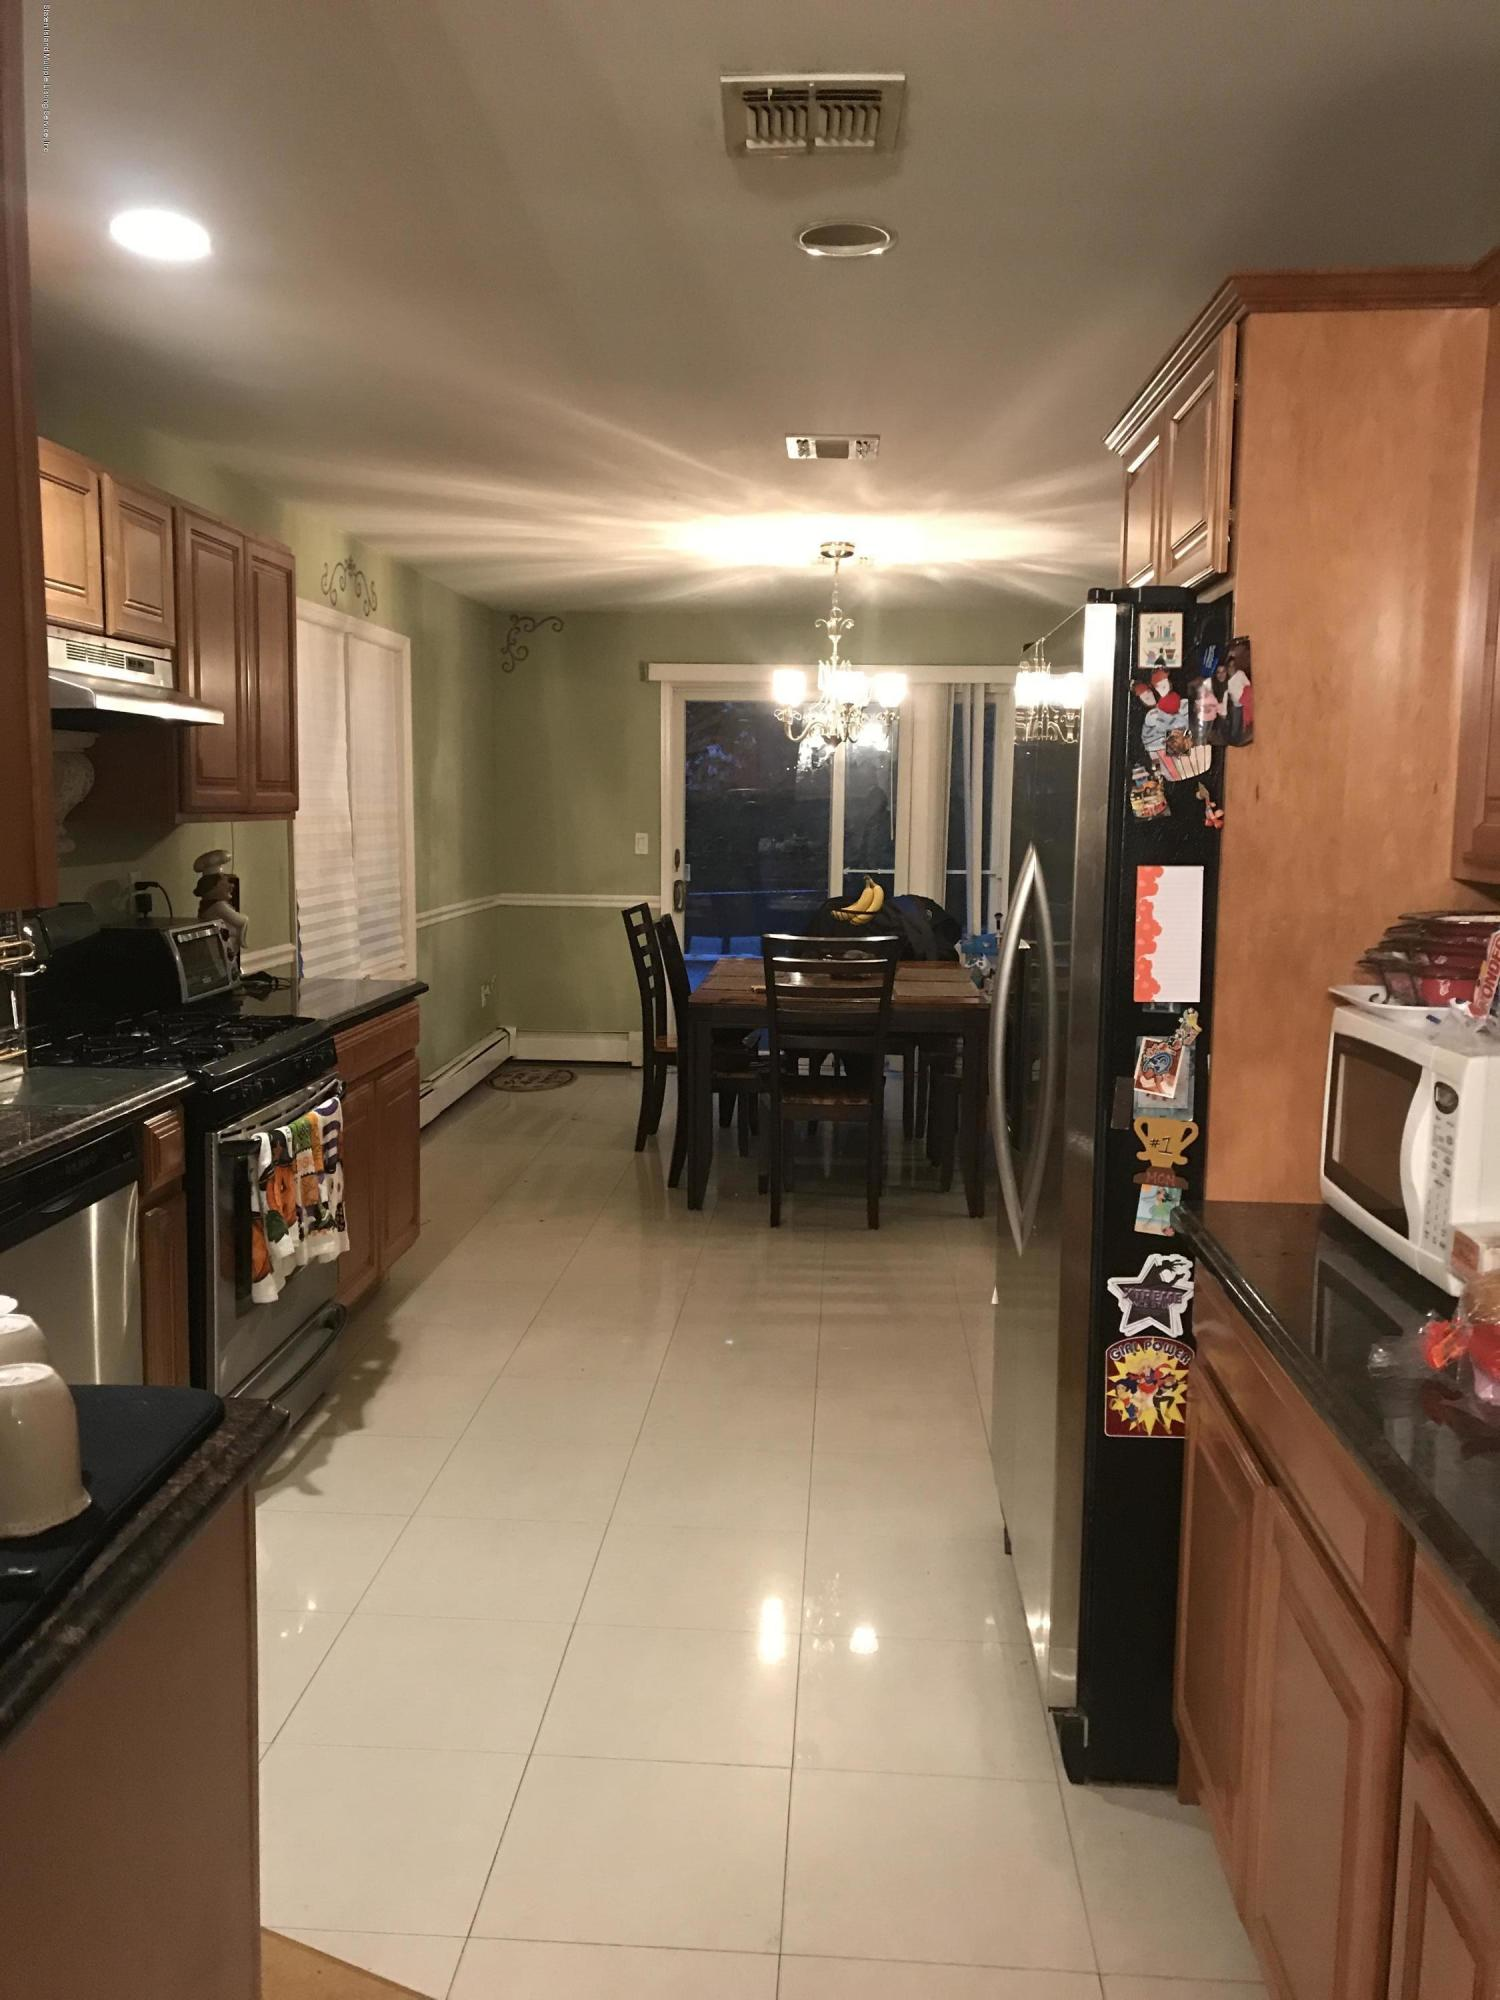 Single Family - Detached 20 Gabrielle Court  Staten Island, NY 10312, MLS-1123867-8